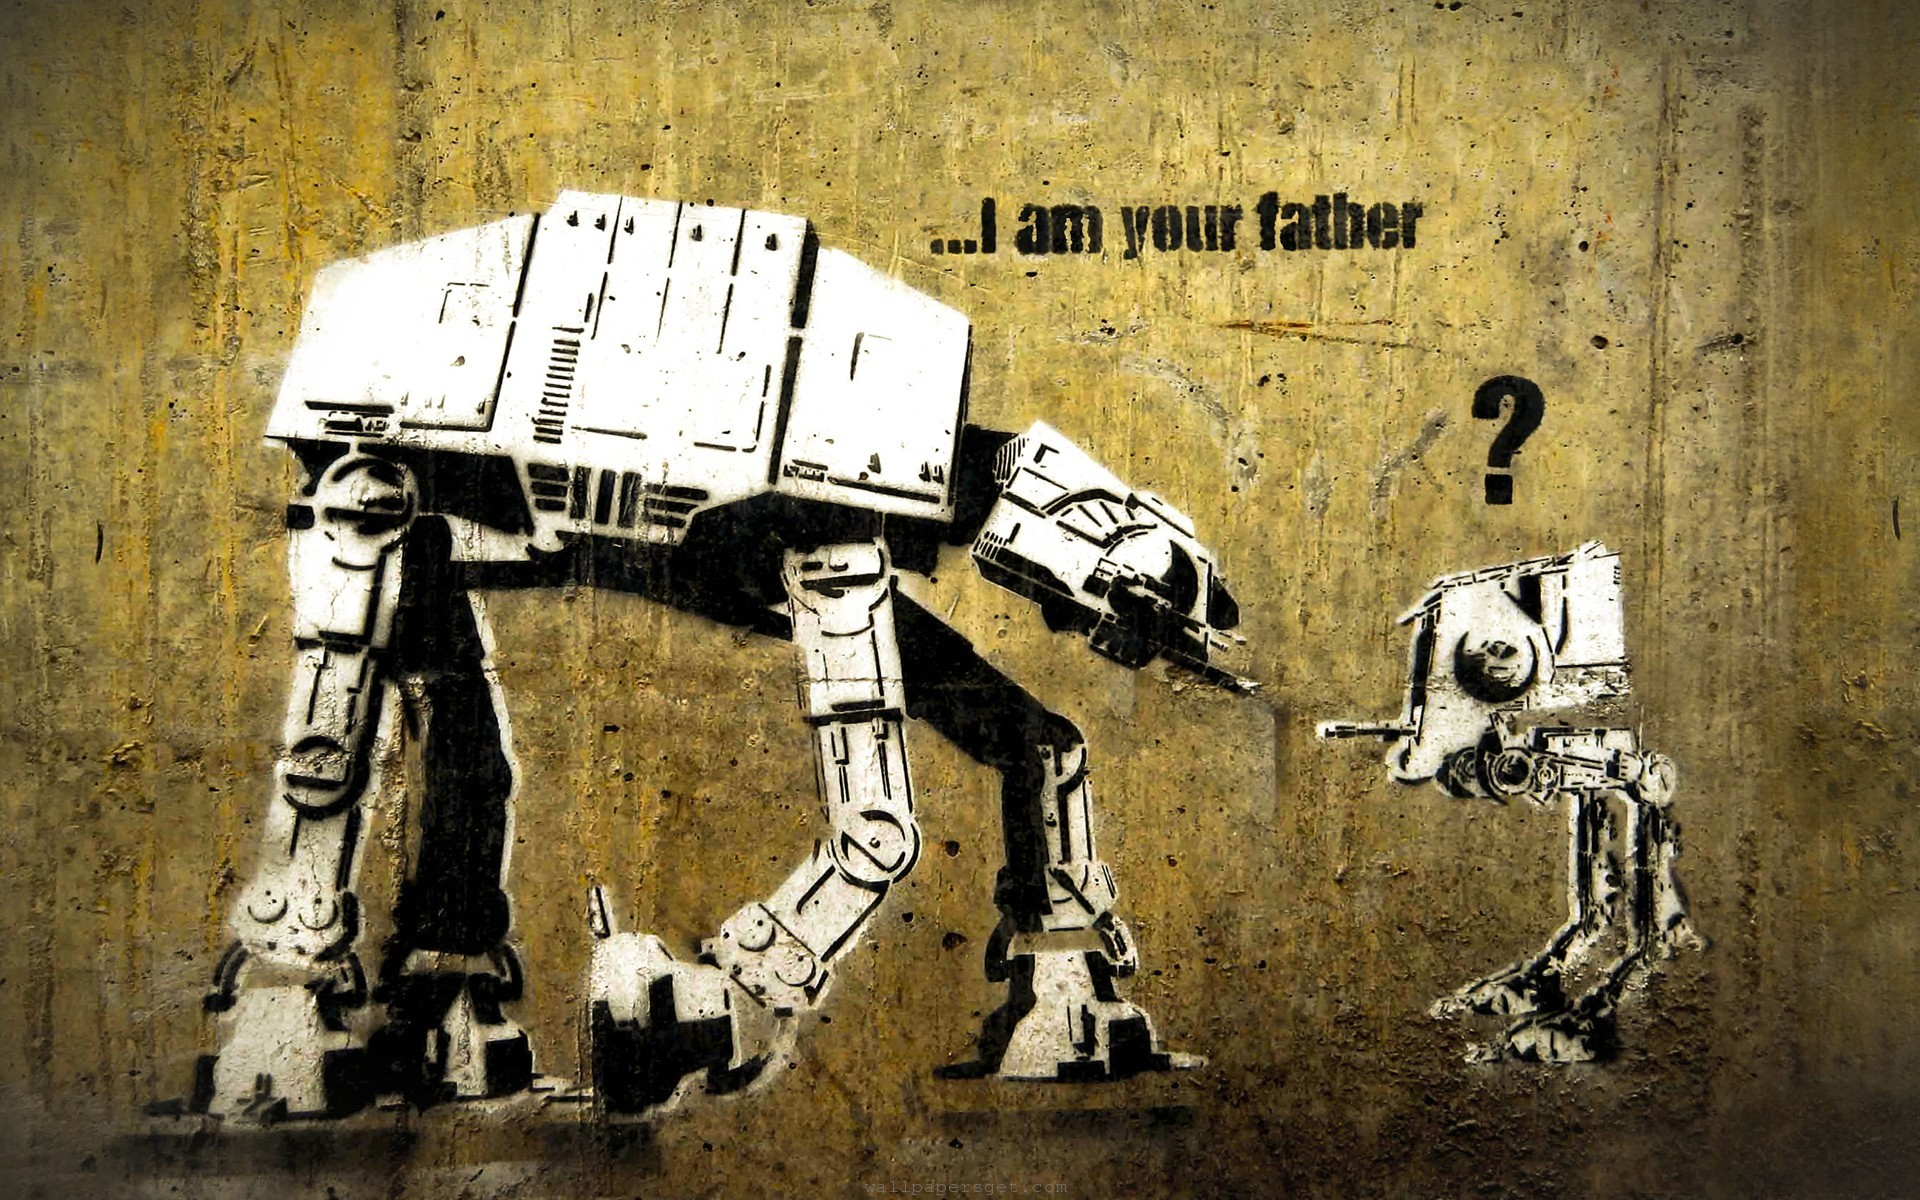 J and J Productions: We Wish You A Merry Star Wars Christmas! |Funny Star Wars Christmas Wallpaper